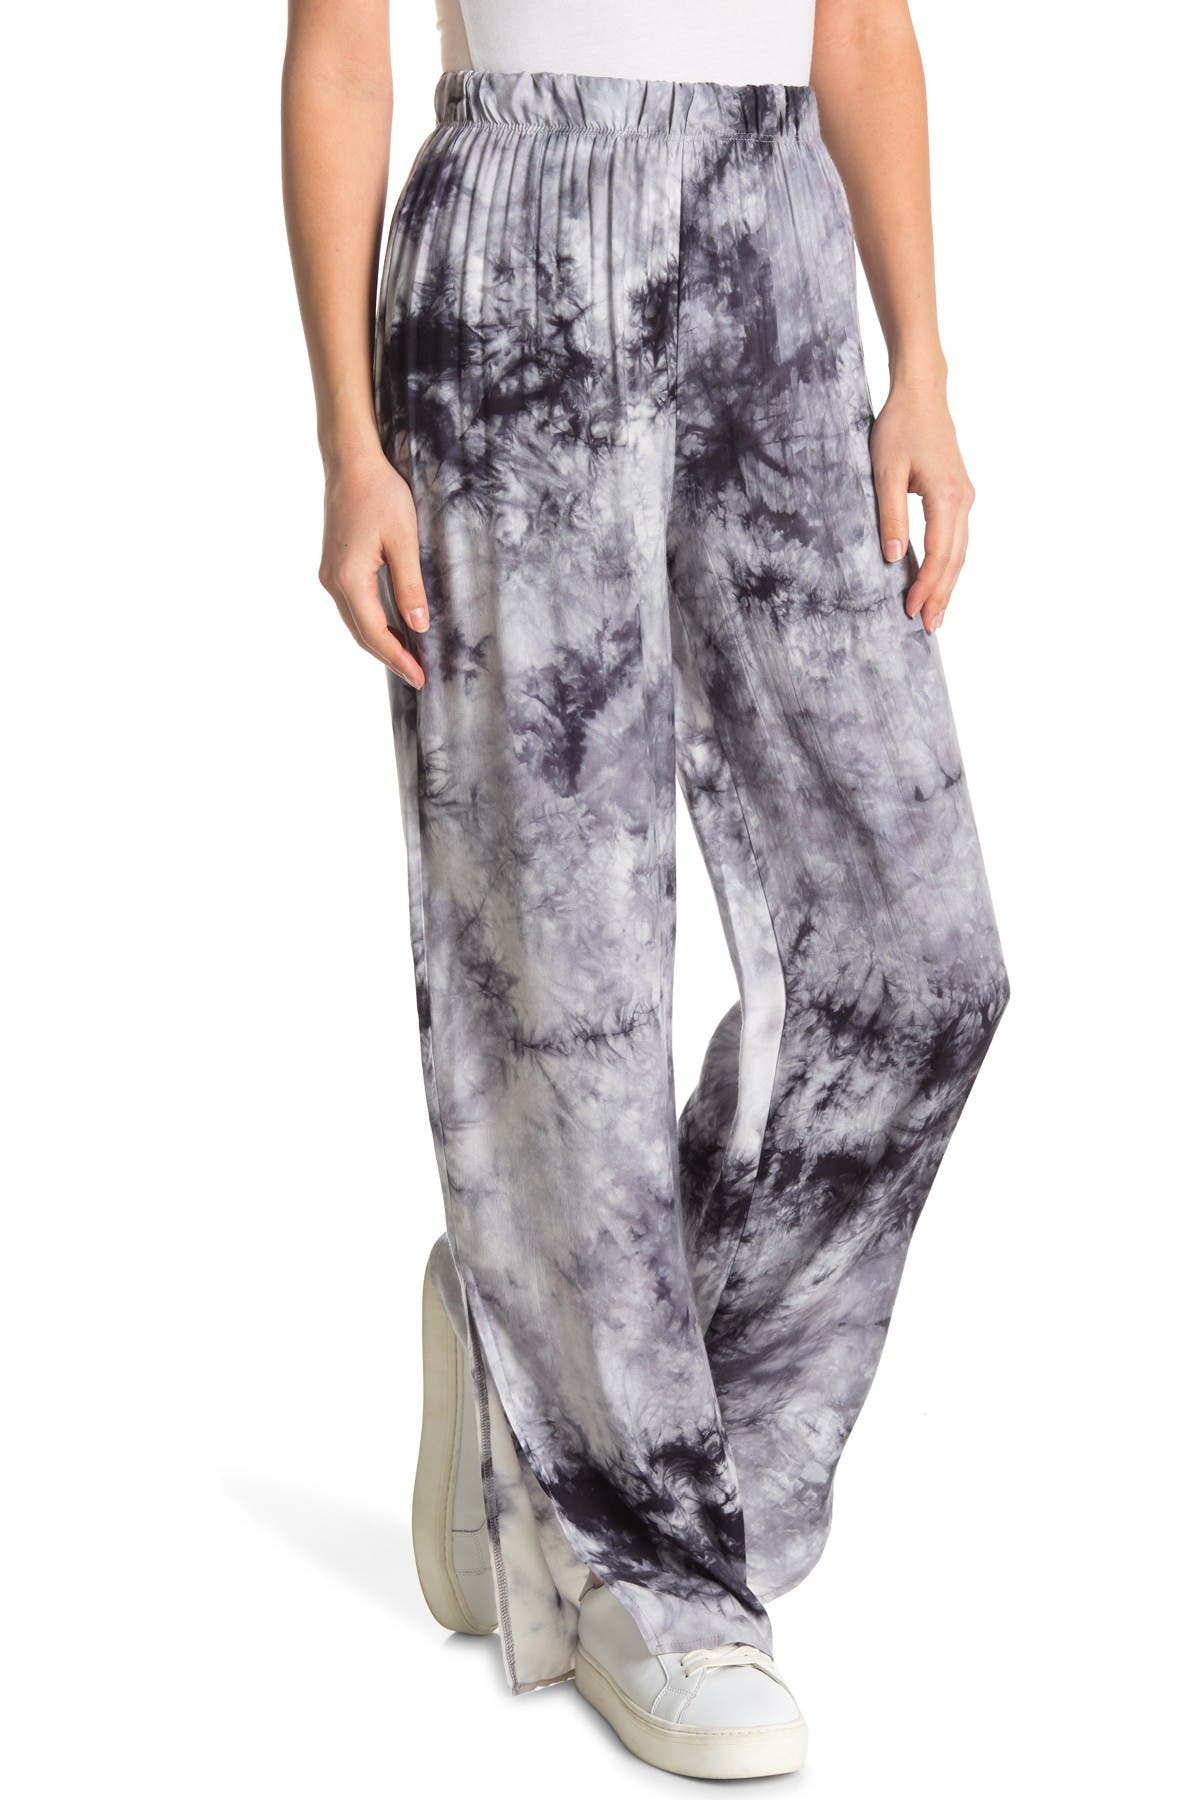 Image of Know One Cares Tie Dye Wide Leg Pants